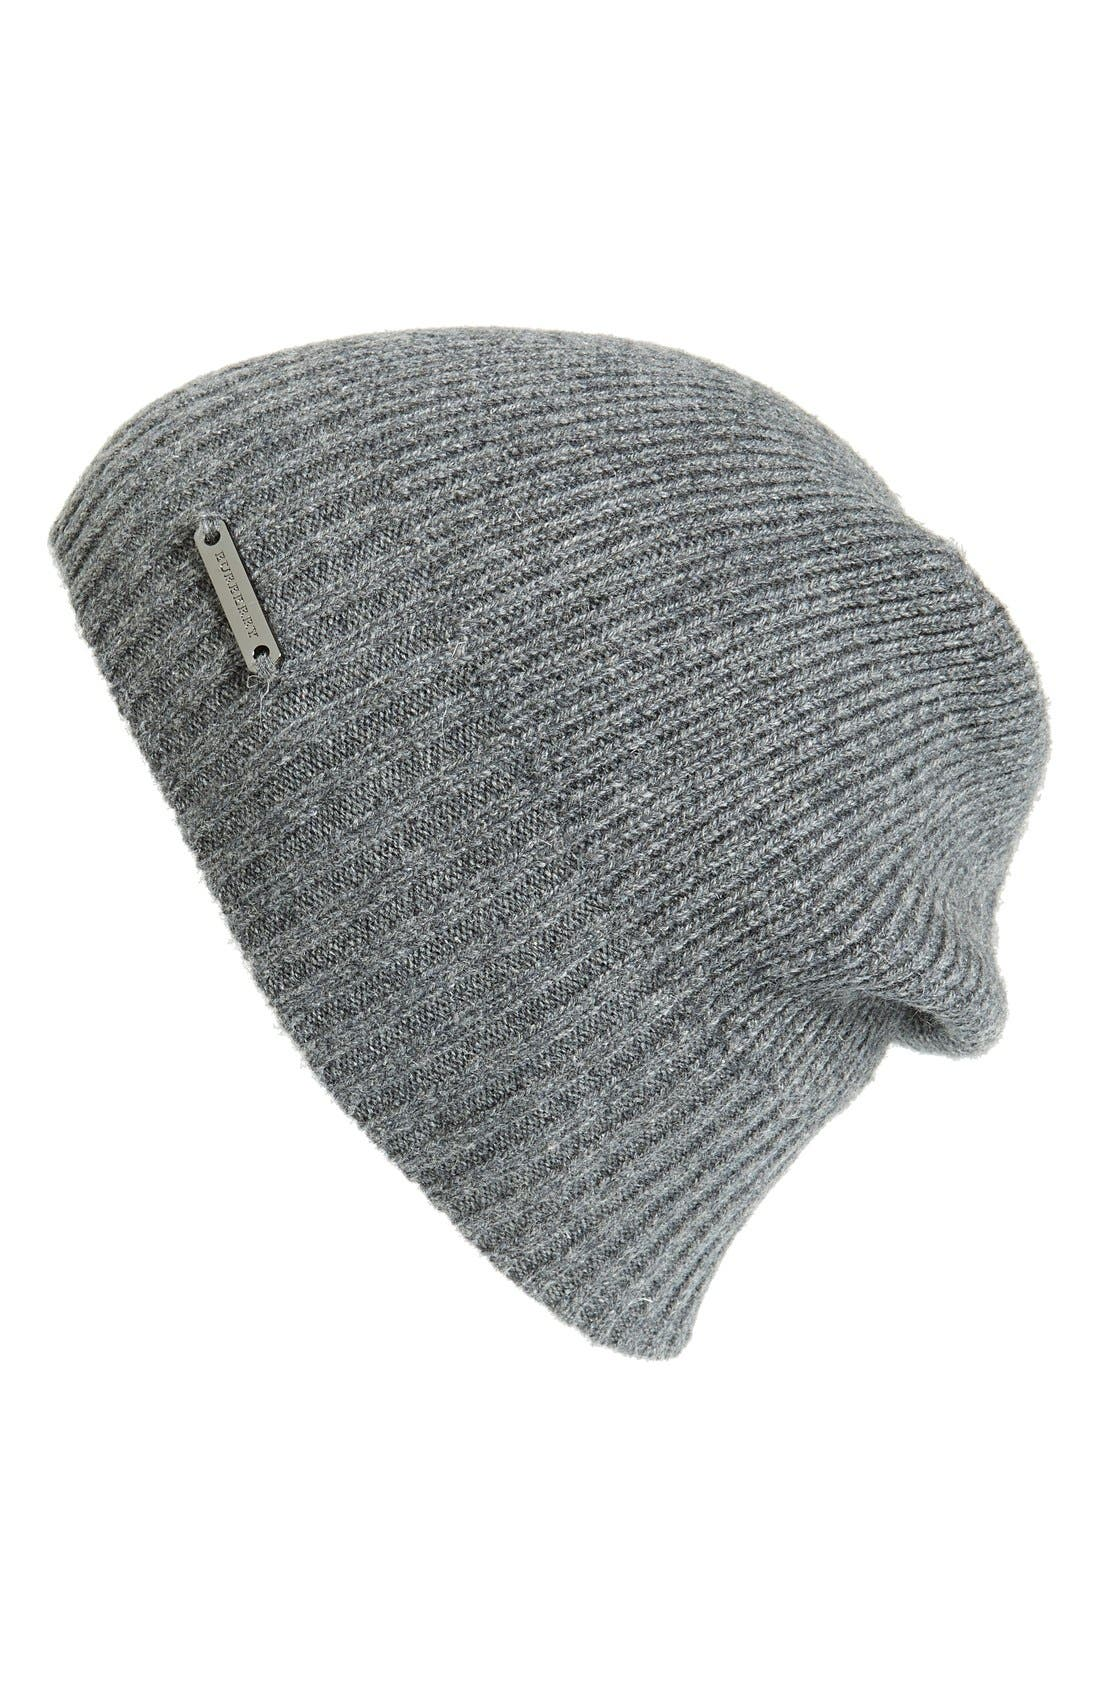 Alternate Image 1 Selected - Burberry Cashmere Beanie